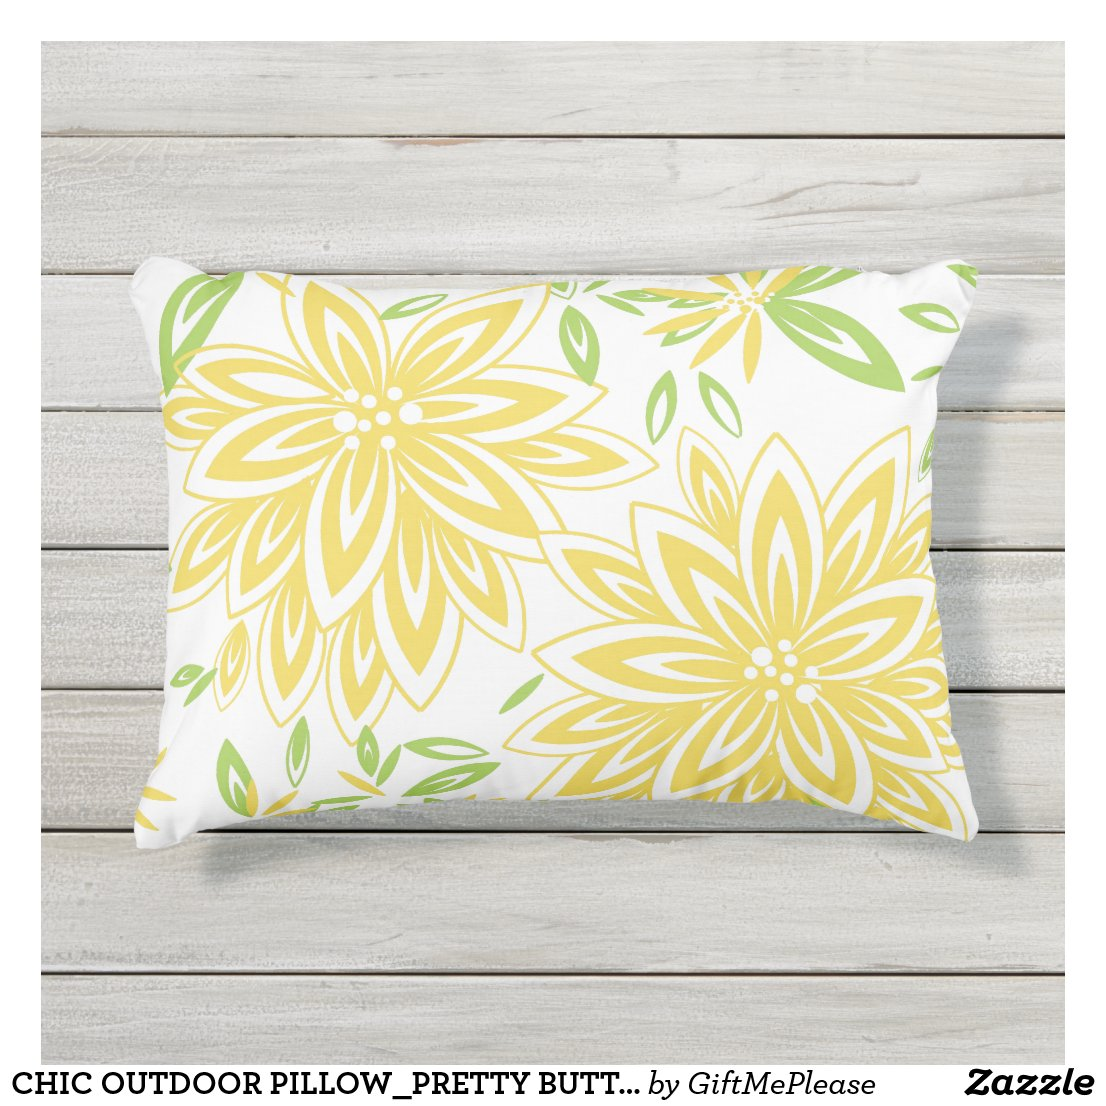 CHIC OUTDOOR PILLOW_PRETTY BUTTER YELLOW FLORAL OUTDOOR PILLOW